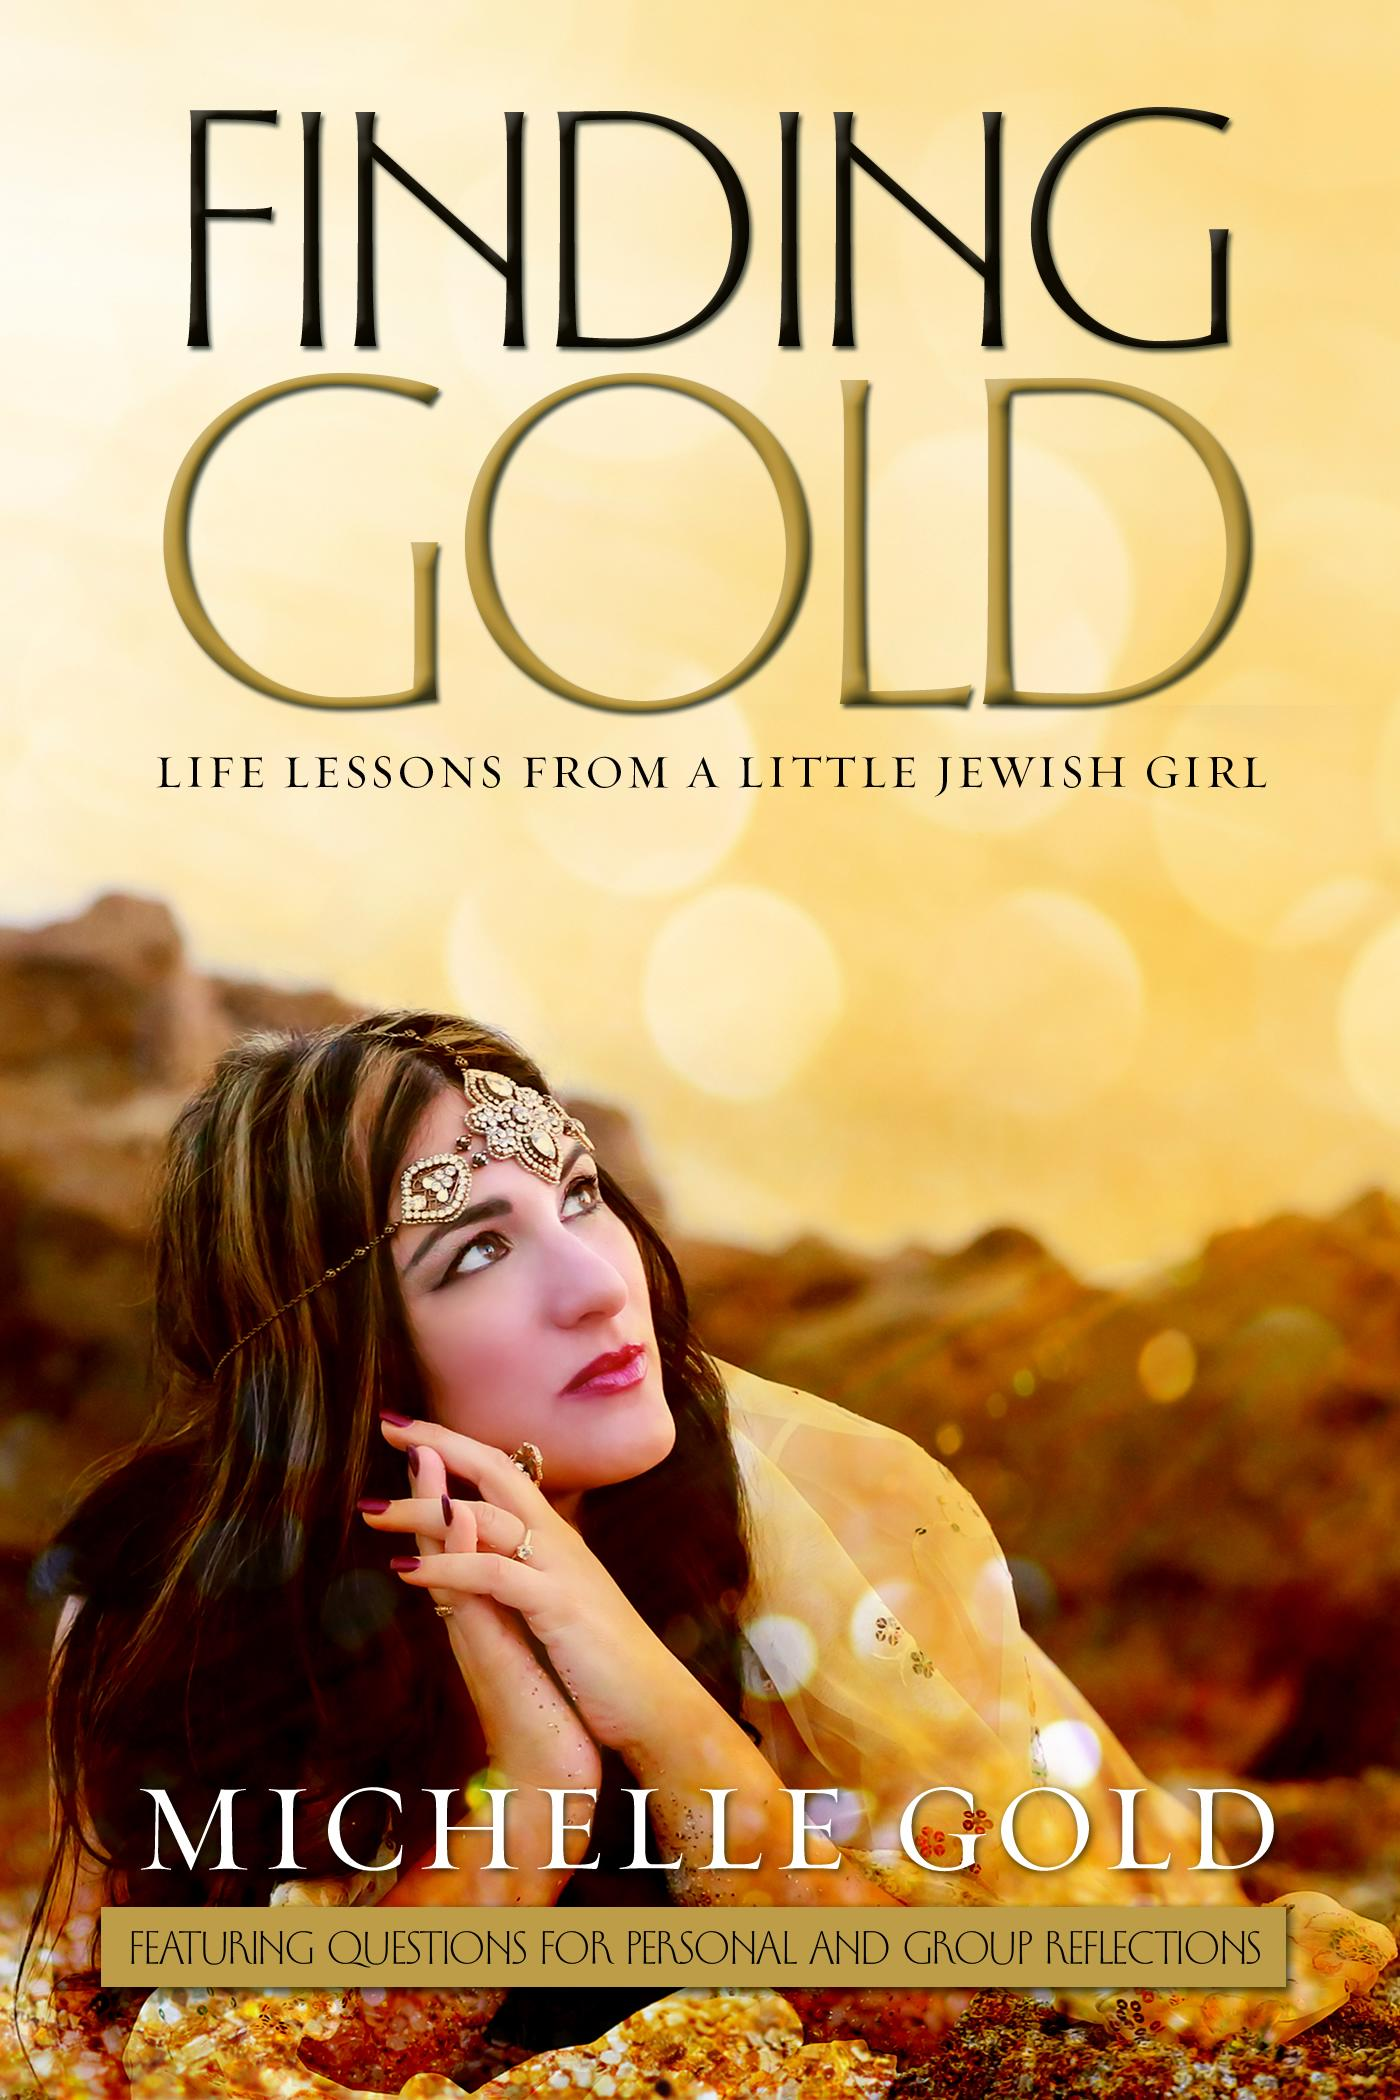 FINDING GOLD: Life Lessons from a Little Jewish Girl - Olive Press